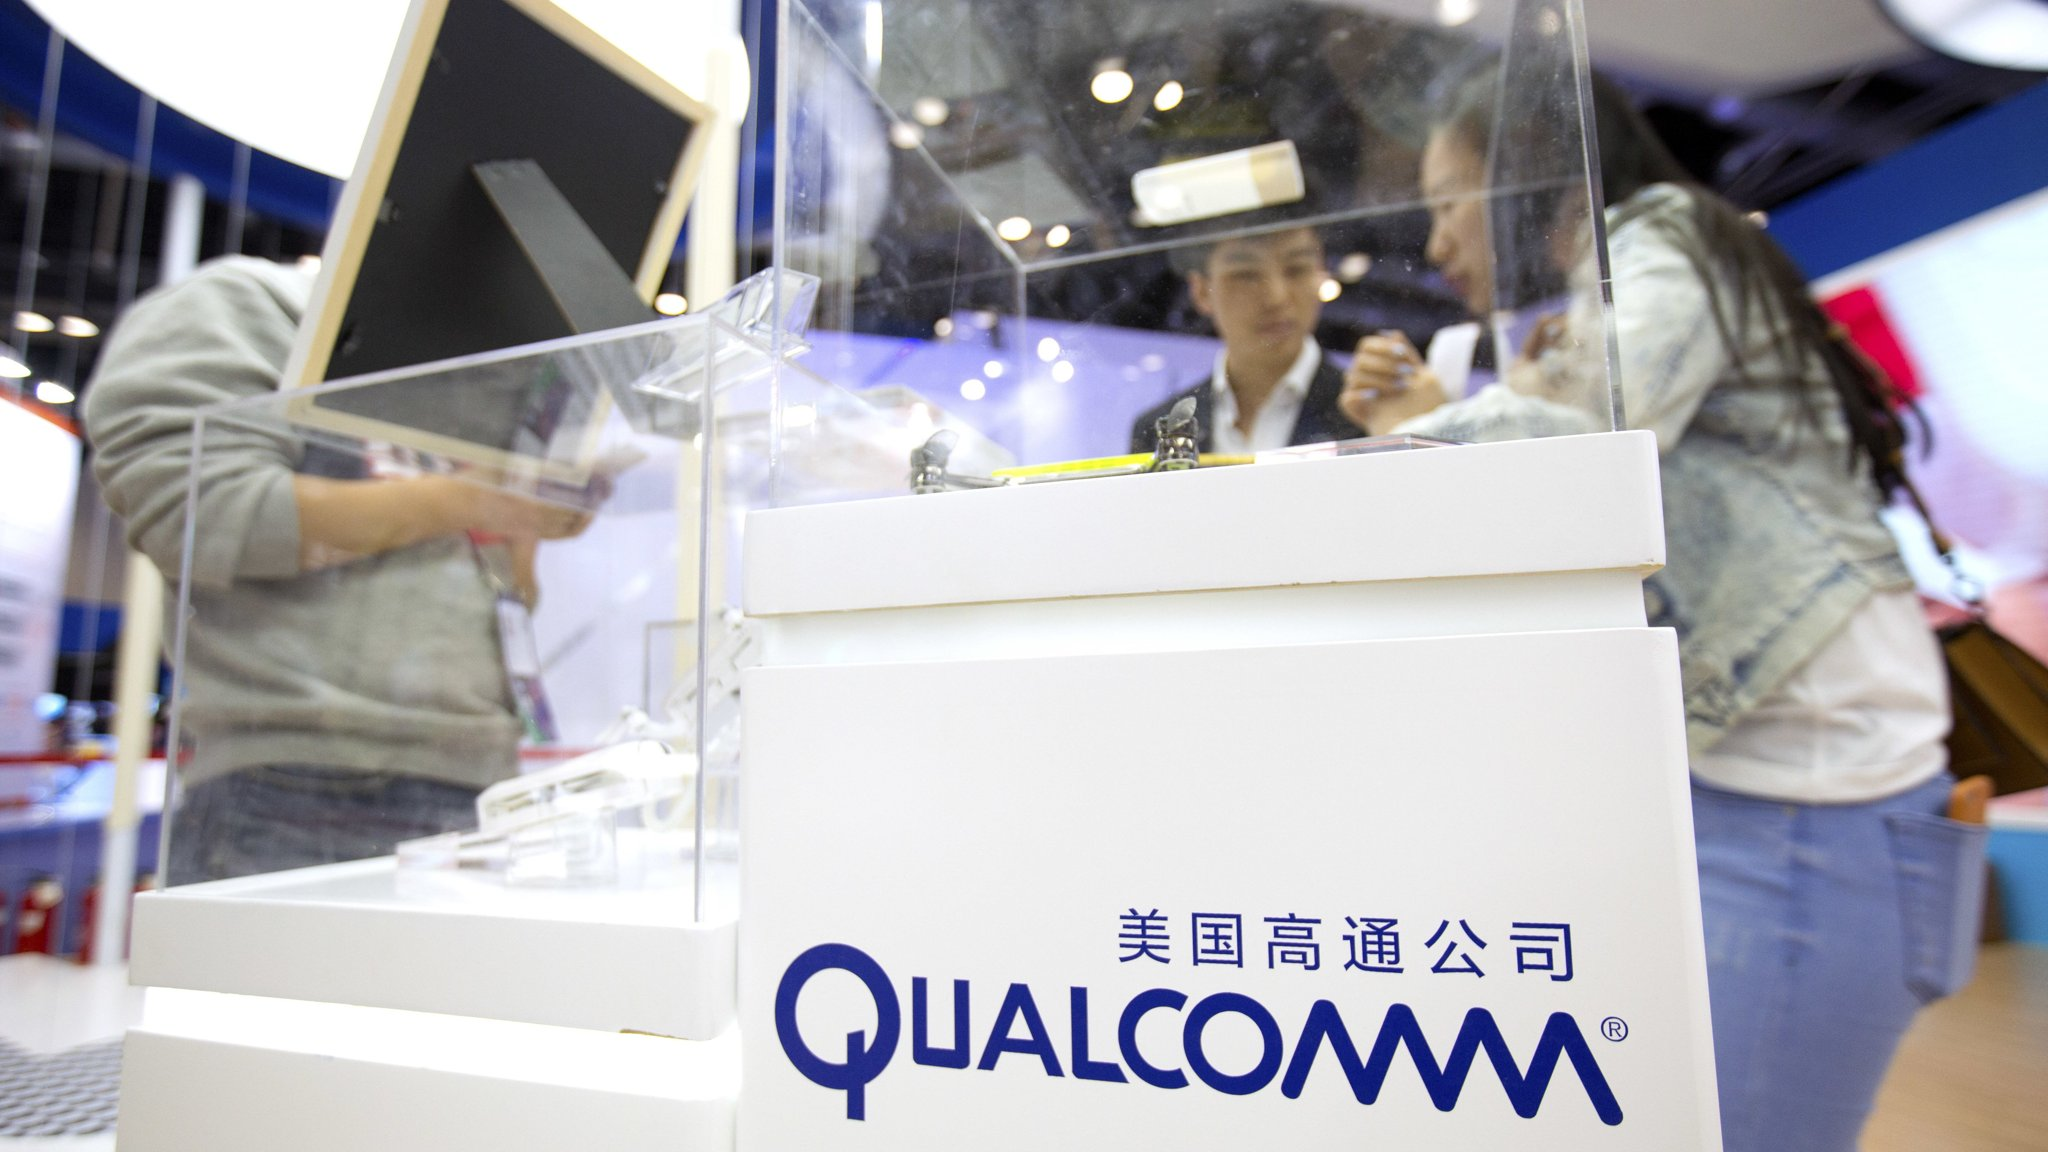 Qualcomm's Chinese partners speak out against Broadcom bid